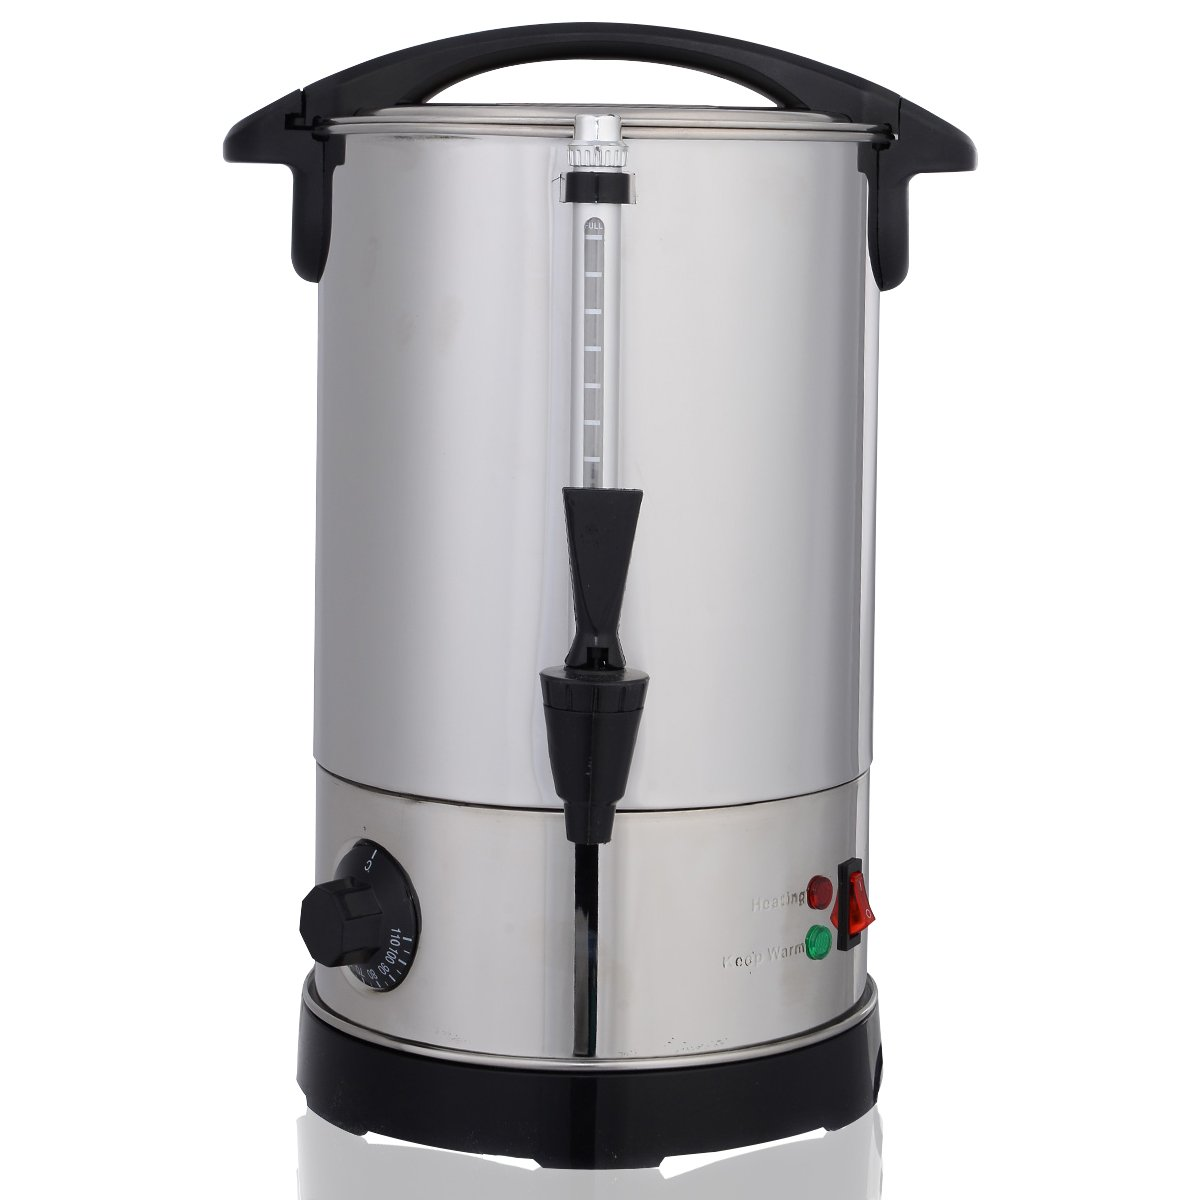 DPThouse Electric Water Boiler and Warmer Stainless Steel 6 Quart, medium, Silver by DPThouse